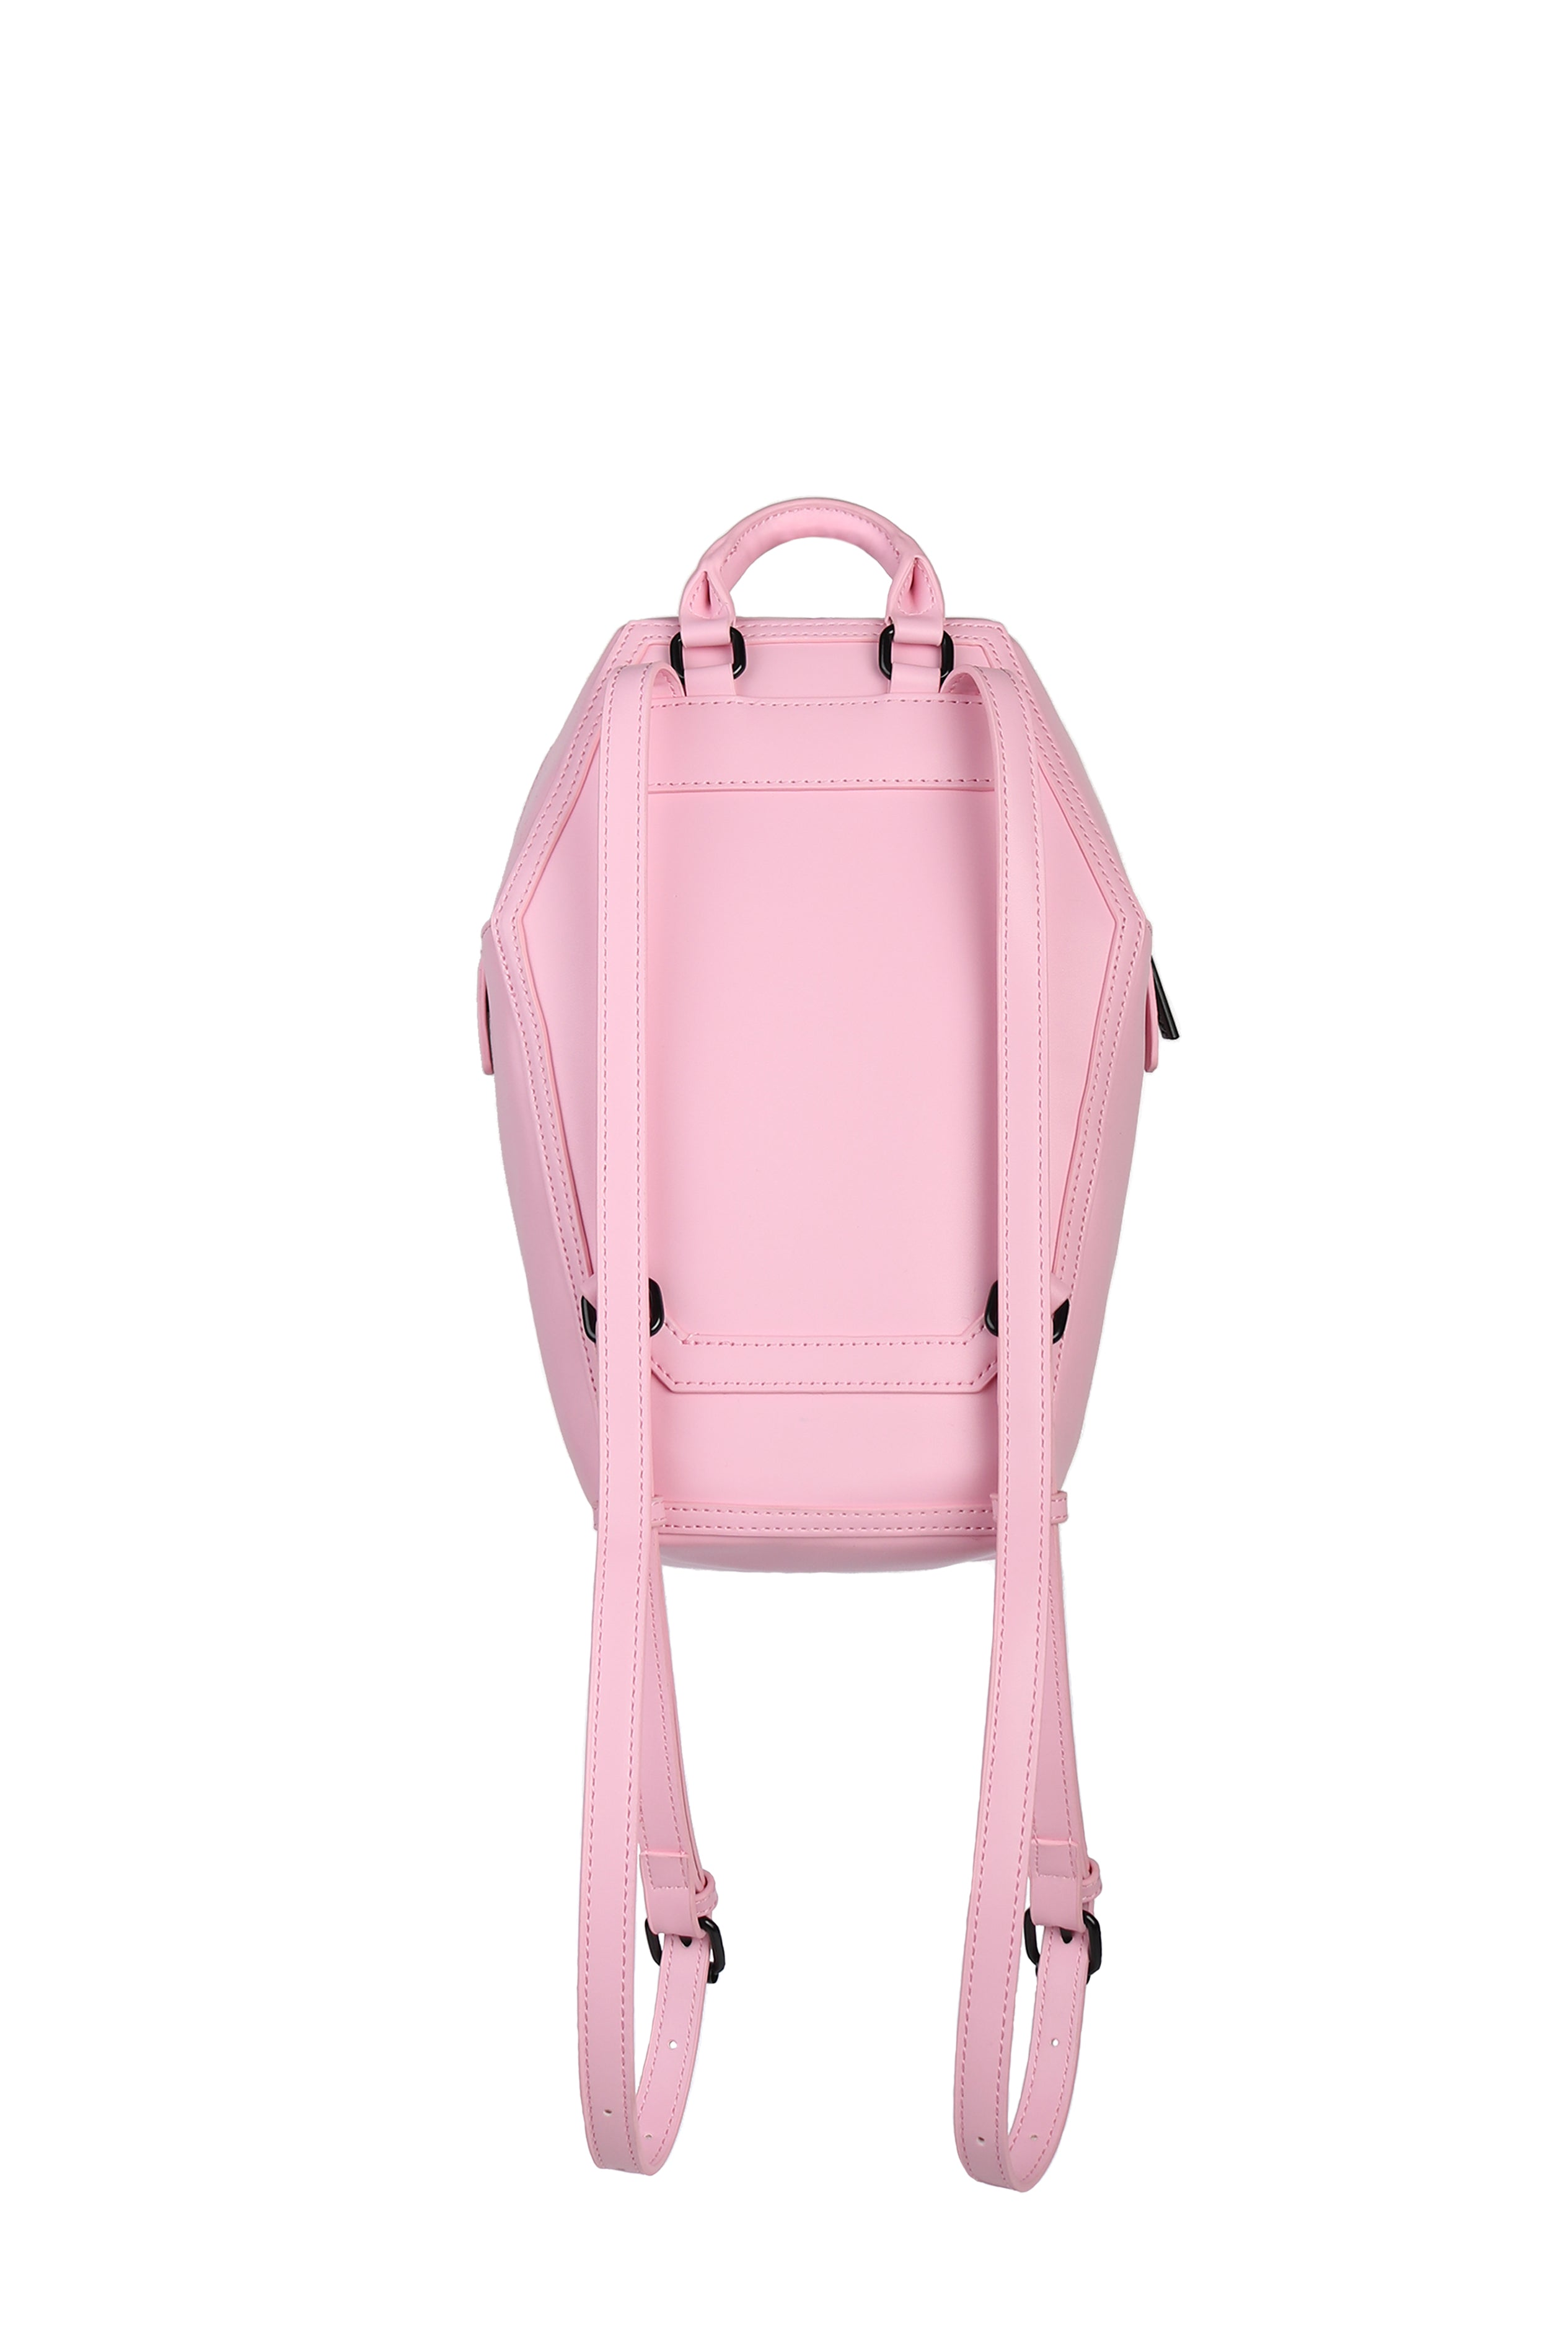 Never Trust - Pink Coffin Backpack